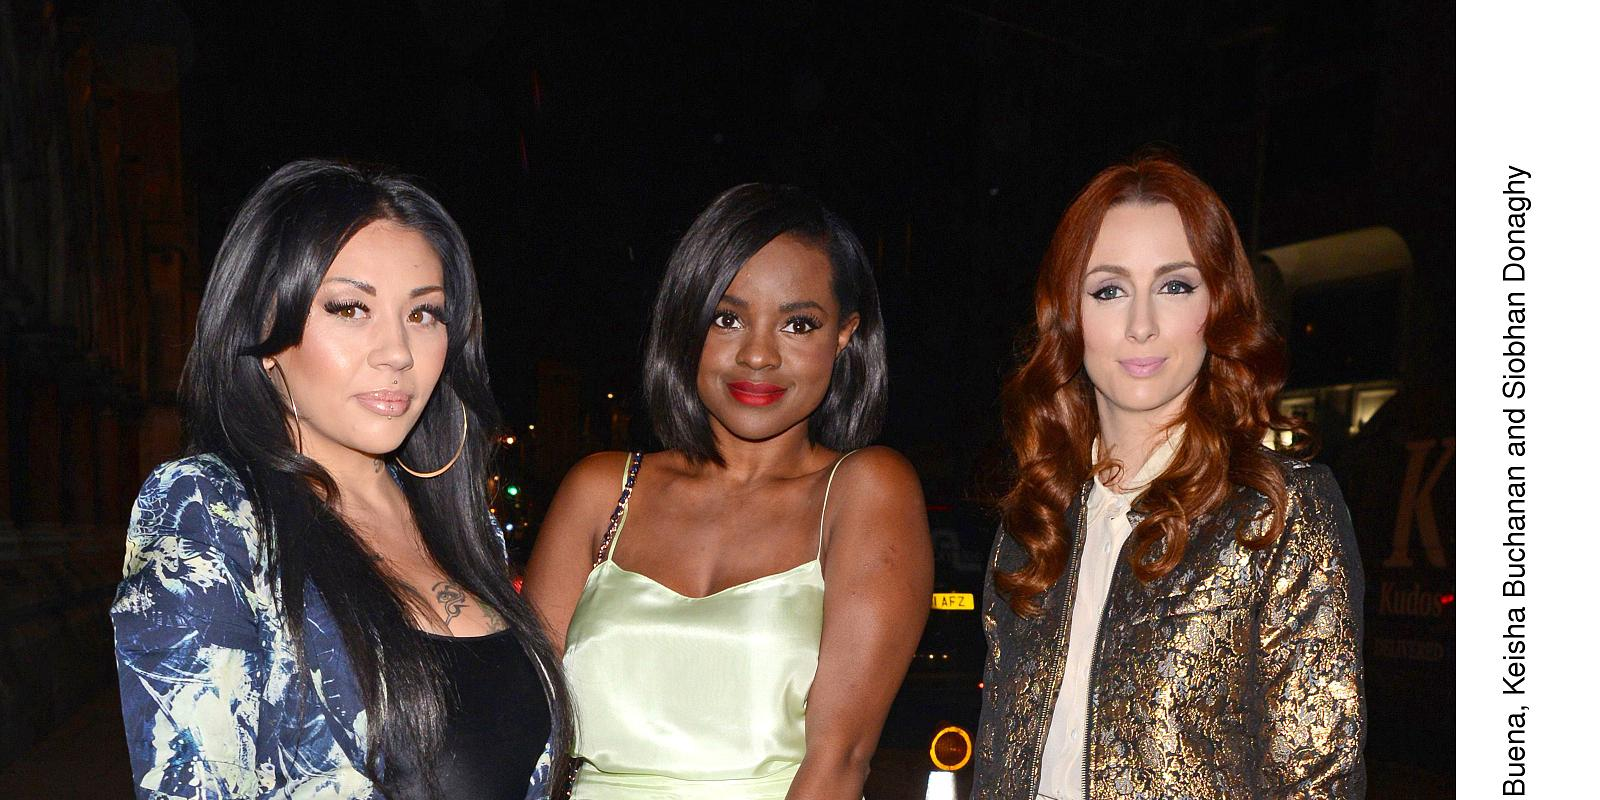 pictures Mutya Buena wins rights to Sugababes name